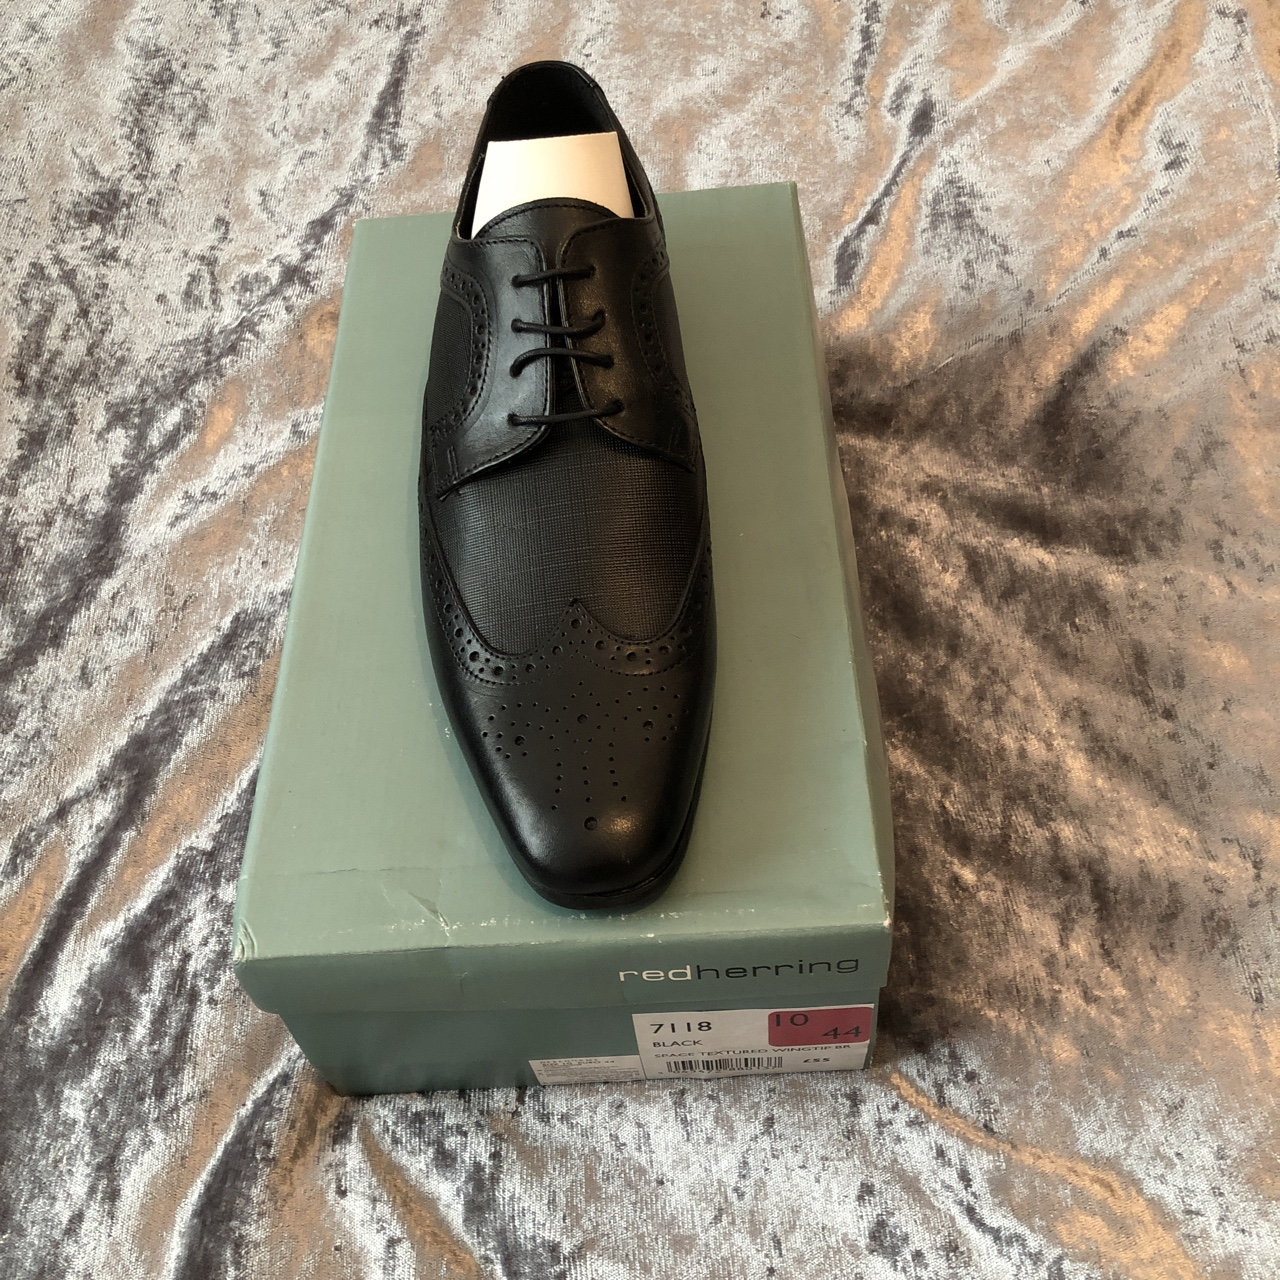 Men's red herring shoes. Paid £55, size